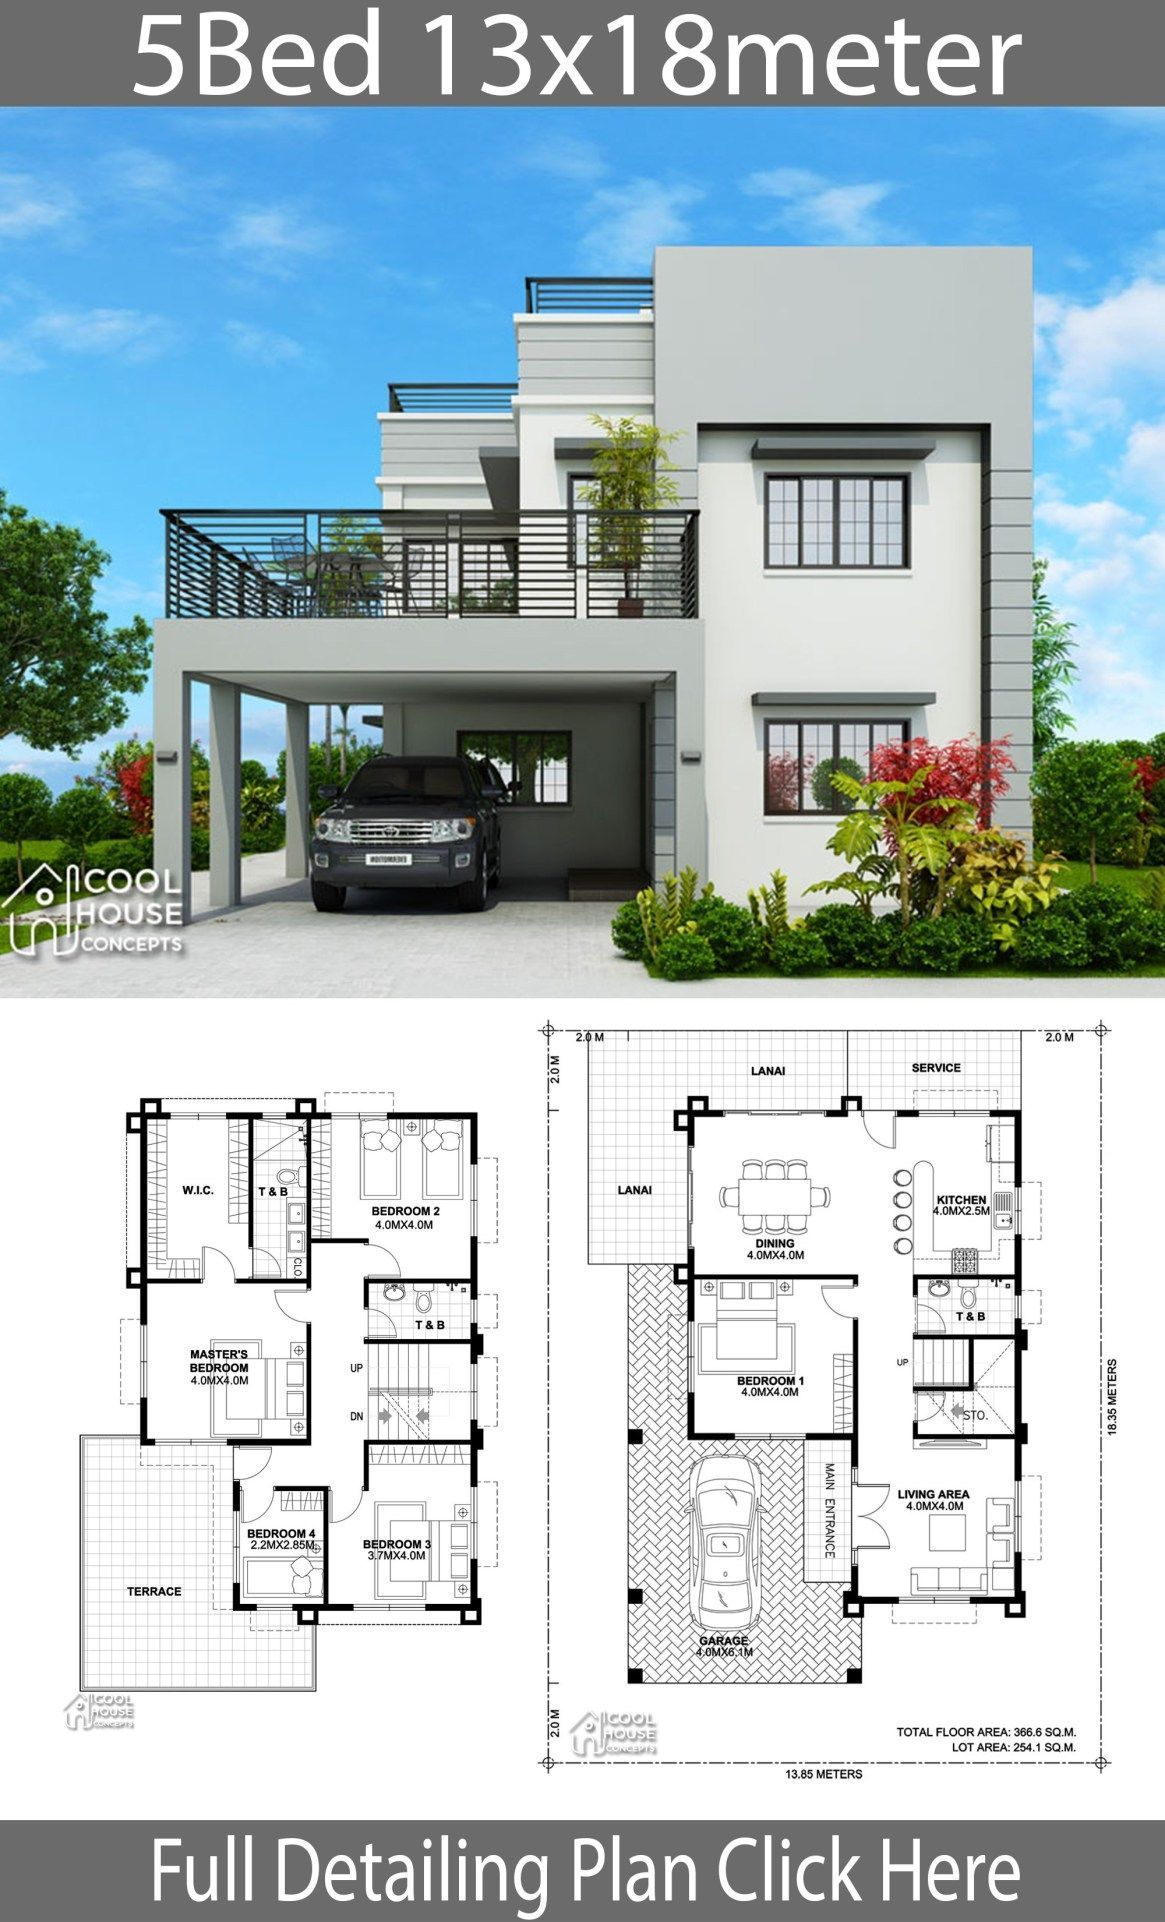 Home Design Plan 13x18m With 5 Bedrooms Home Design With Plansearch Source By Sylvieisrael House Construction Plan House Layouts House Plans Mansion